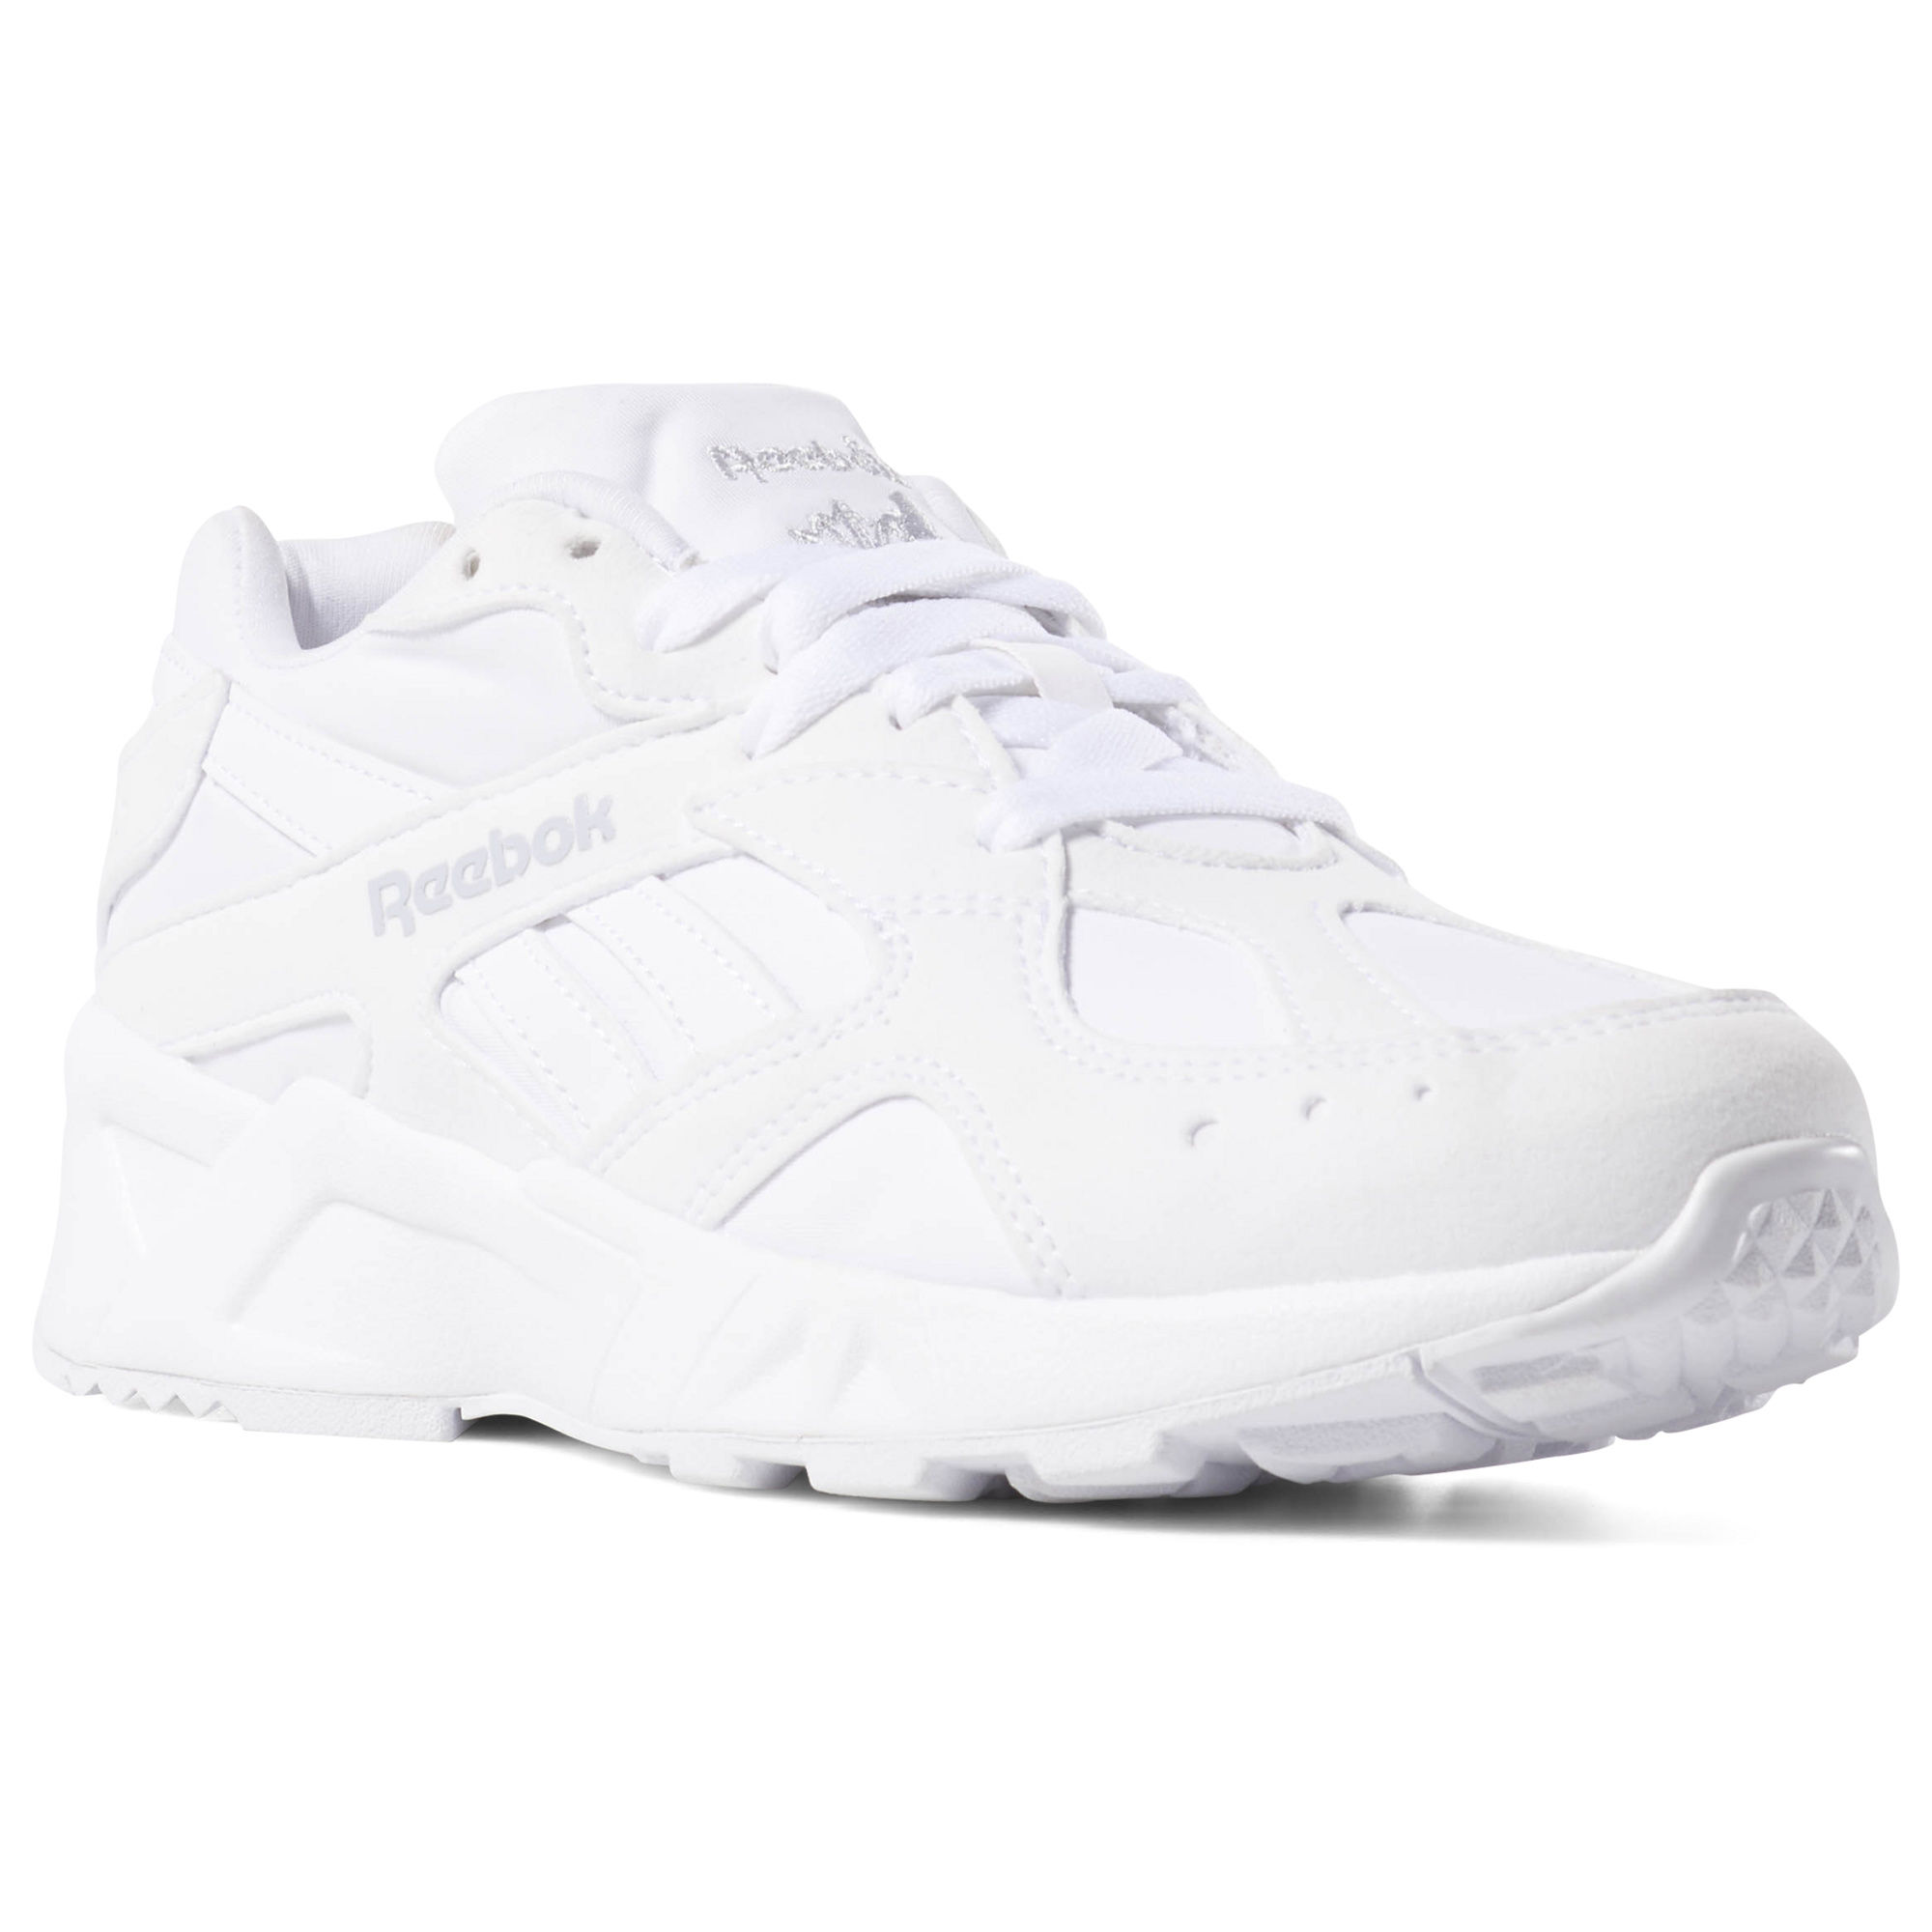 Reebok Aztrek Womens White/Grey Sneakers (942NFRDM)